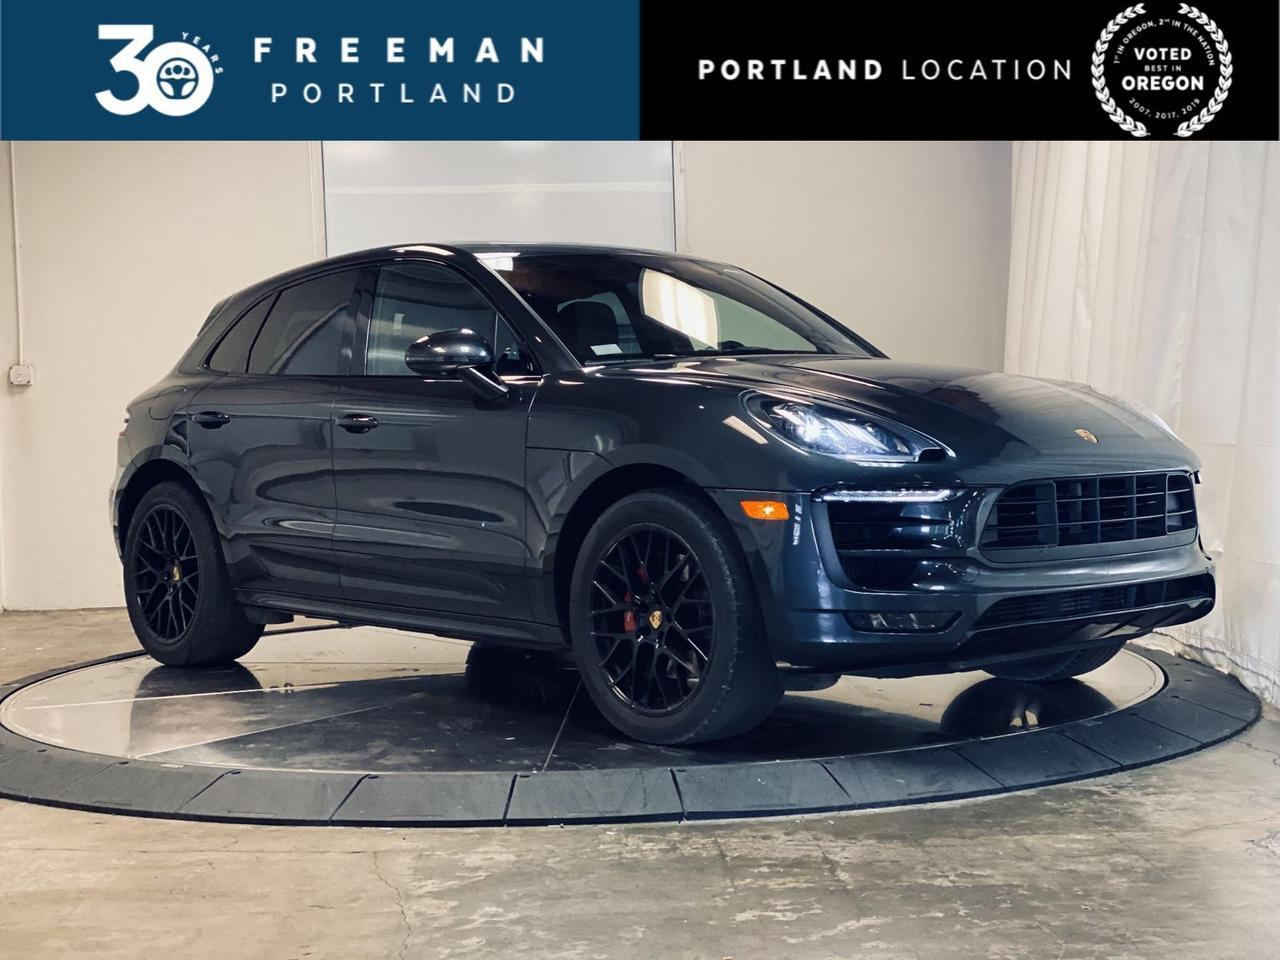 2017 Porsche Macan GTS Heated & Cooled Seats Carbon Fiber Interior Pkg Premium Pkg + Portland OR